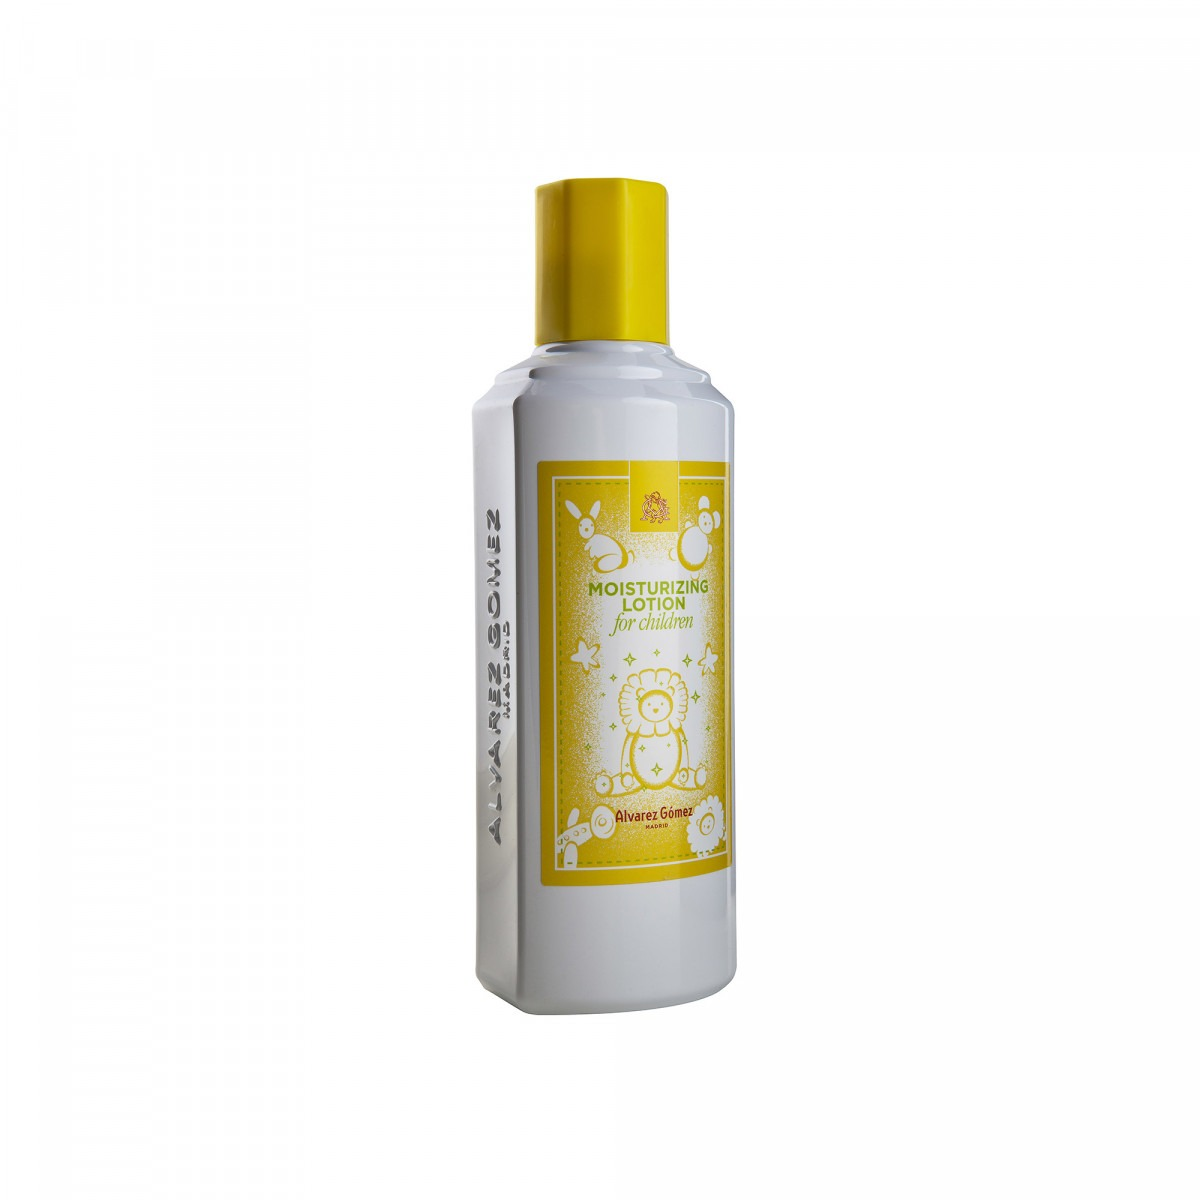 Alvarez Gomez childrens moisturizing lotion 300ml